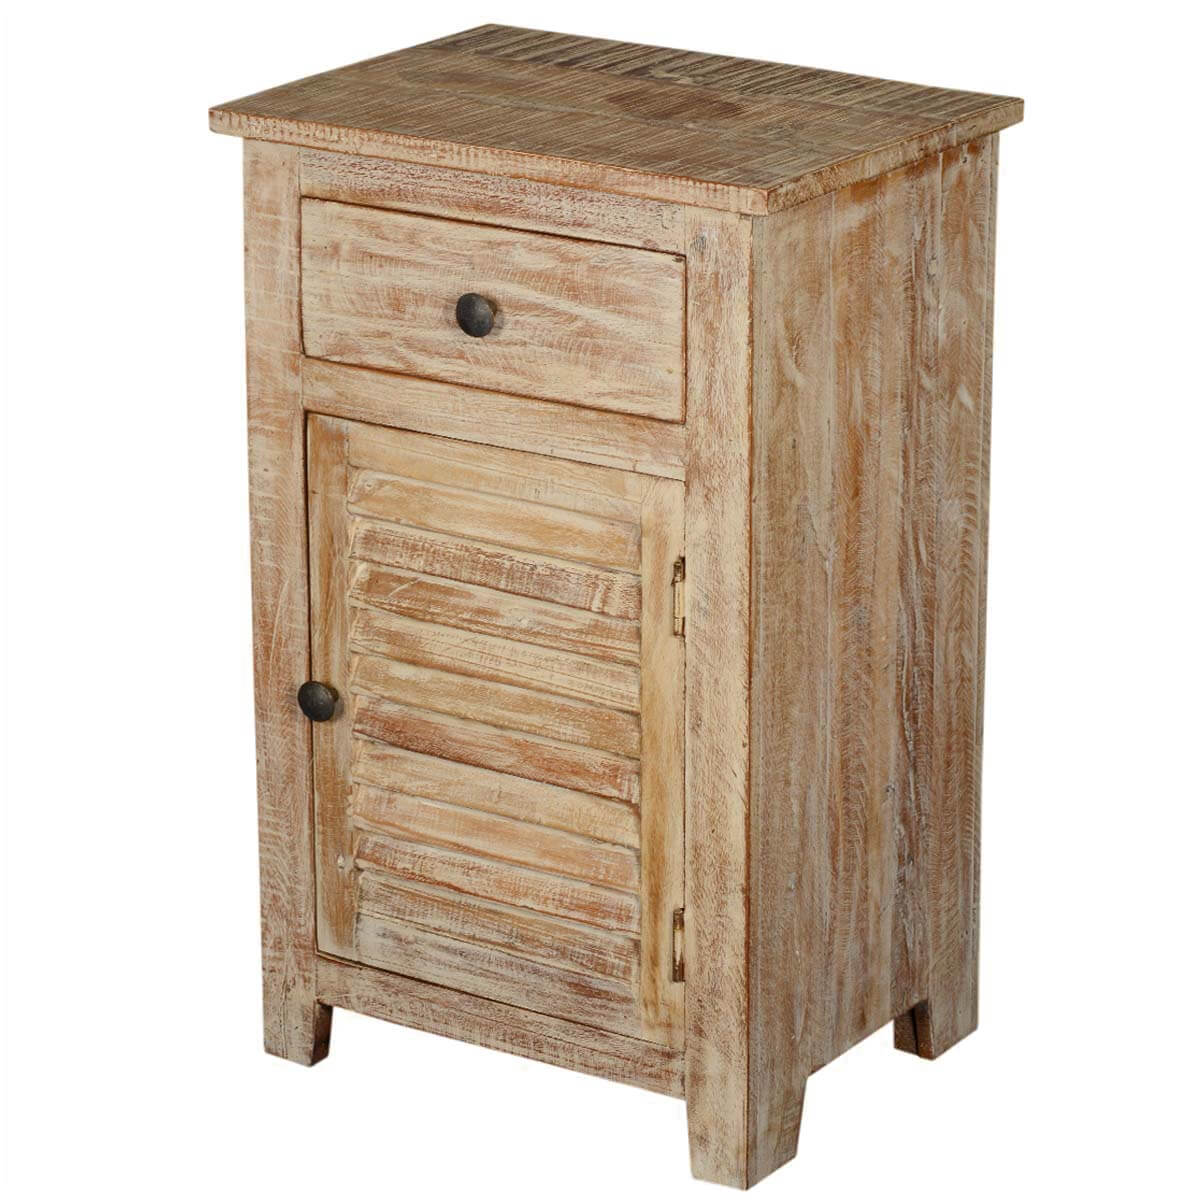 Reclaimed Wood End Tables ~ Winter night reclaimed wood shutter door end table stand